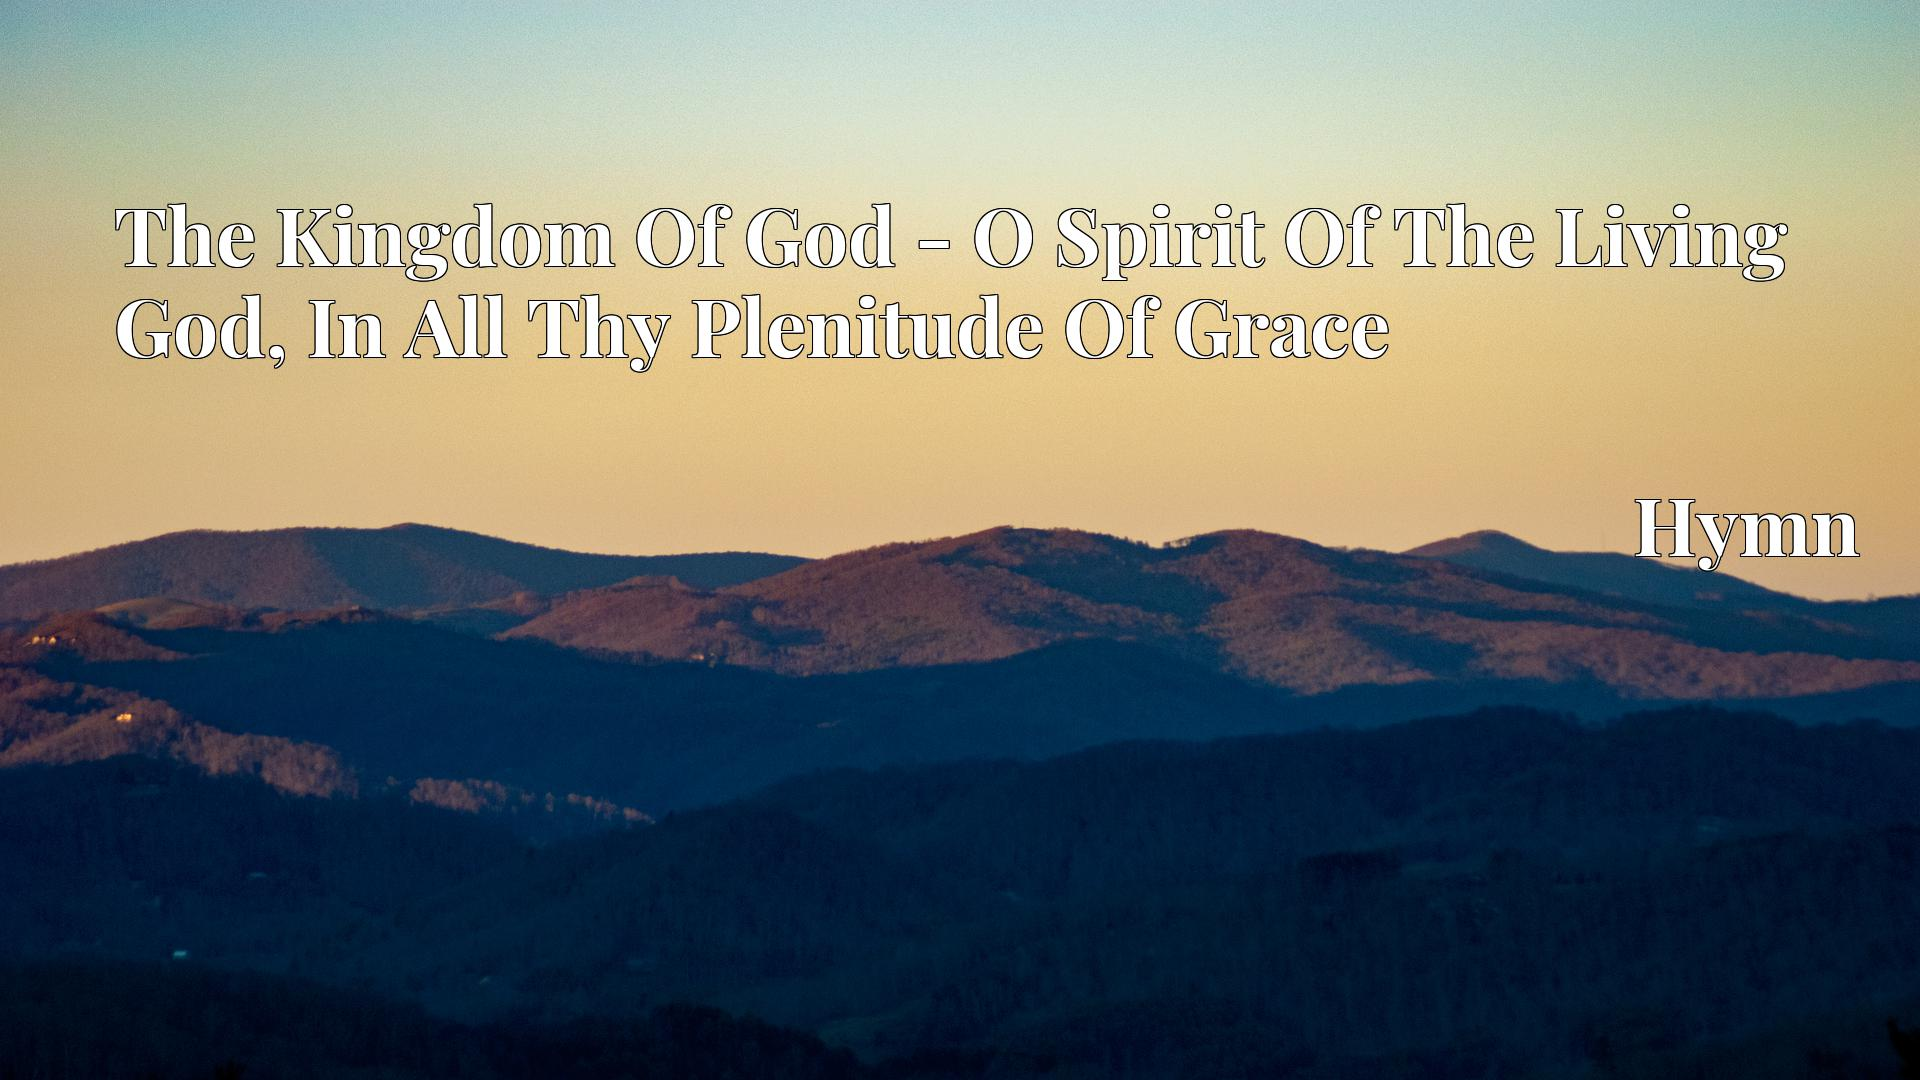 The Kingdom Of God - O Spirit Of The Living God, In All Thy Plenitude Of Grace - Hymn